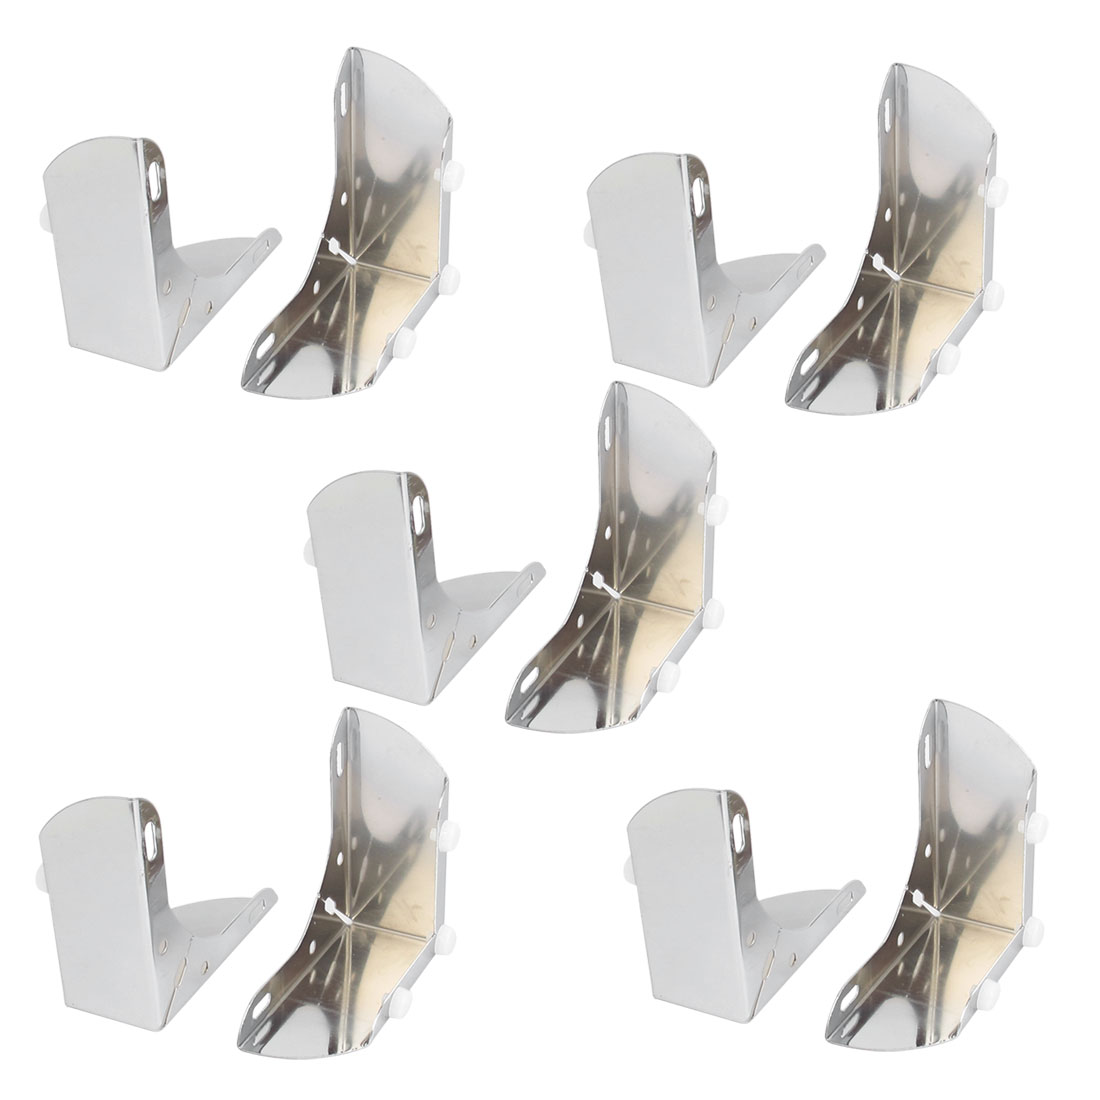 47mm Inner Height Furniture Feet Cabinet Sofa Leg Decor 10pcs